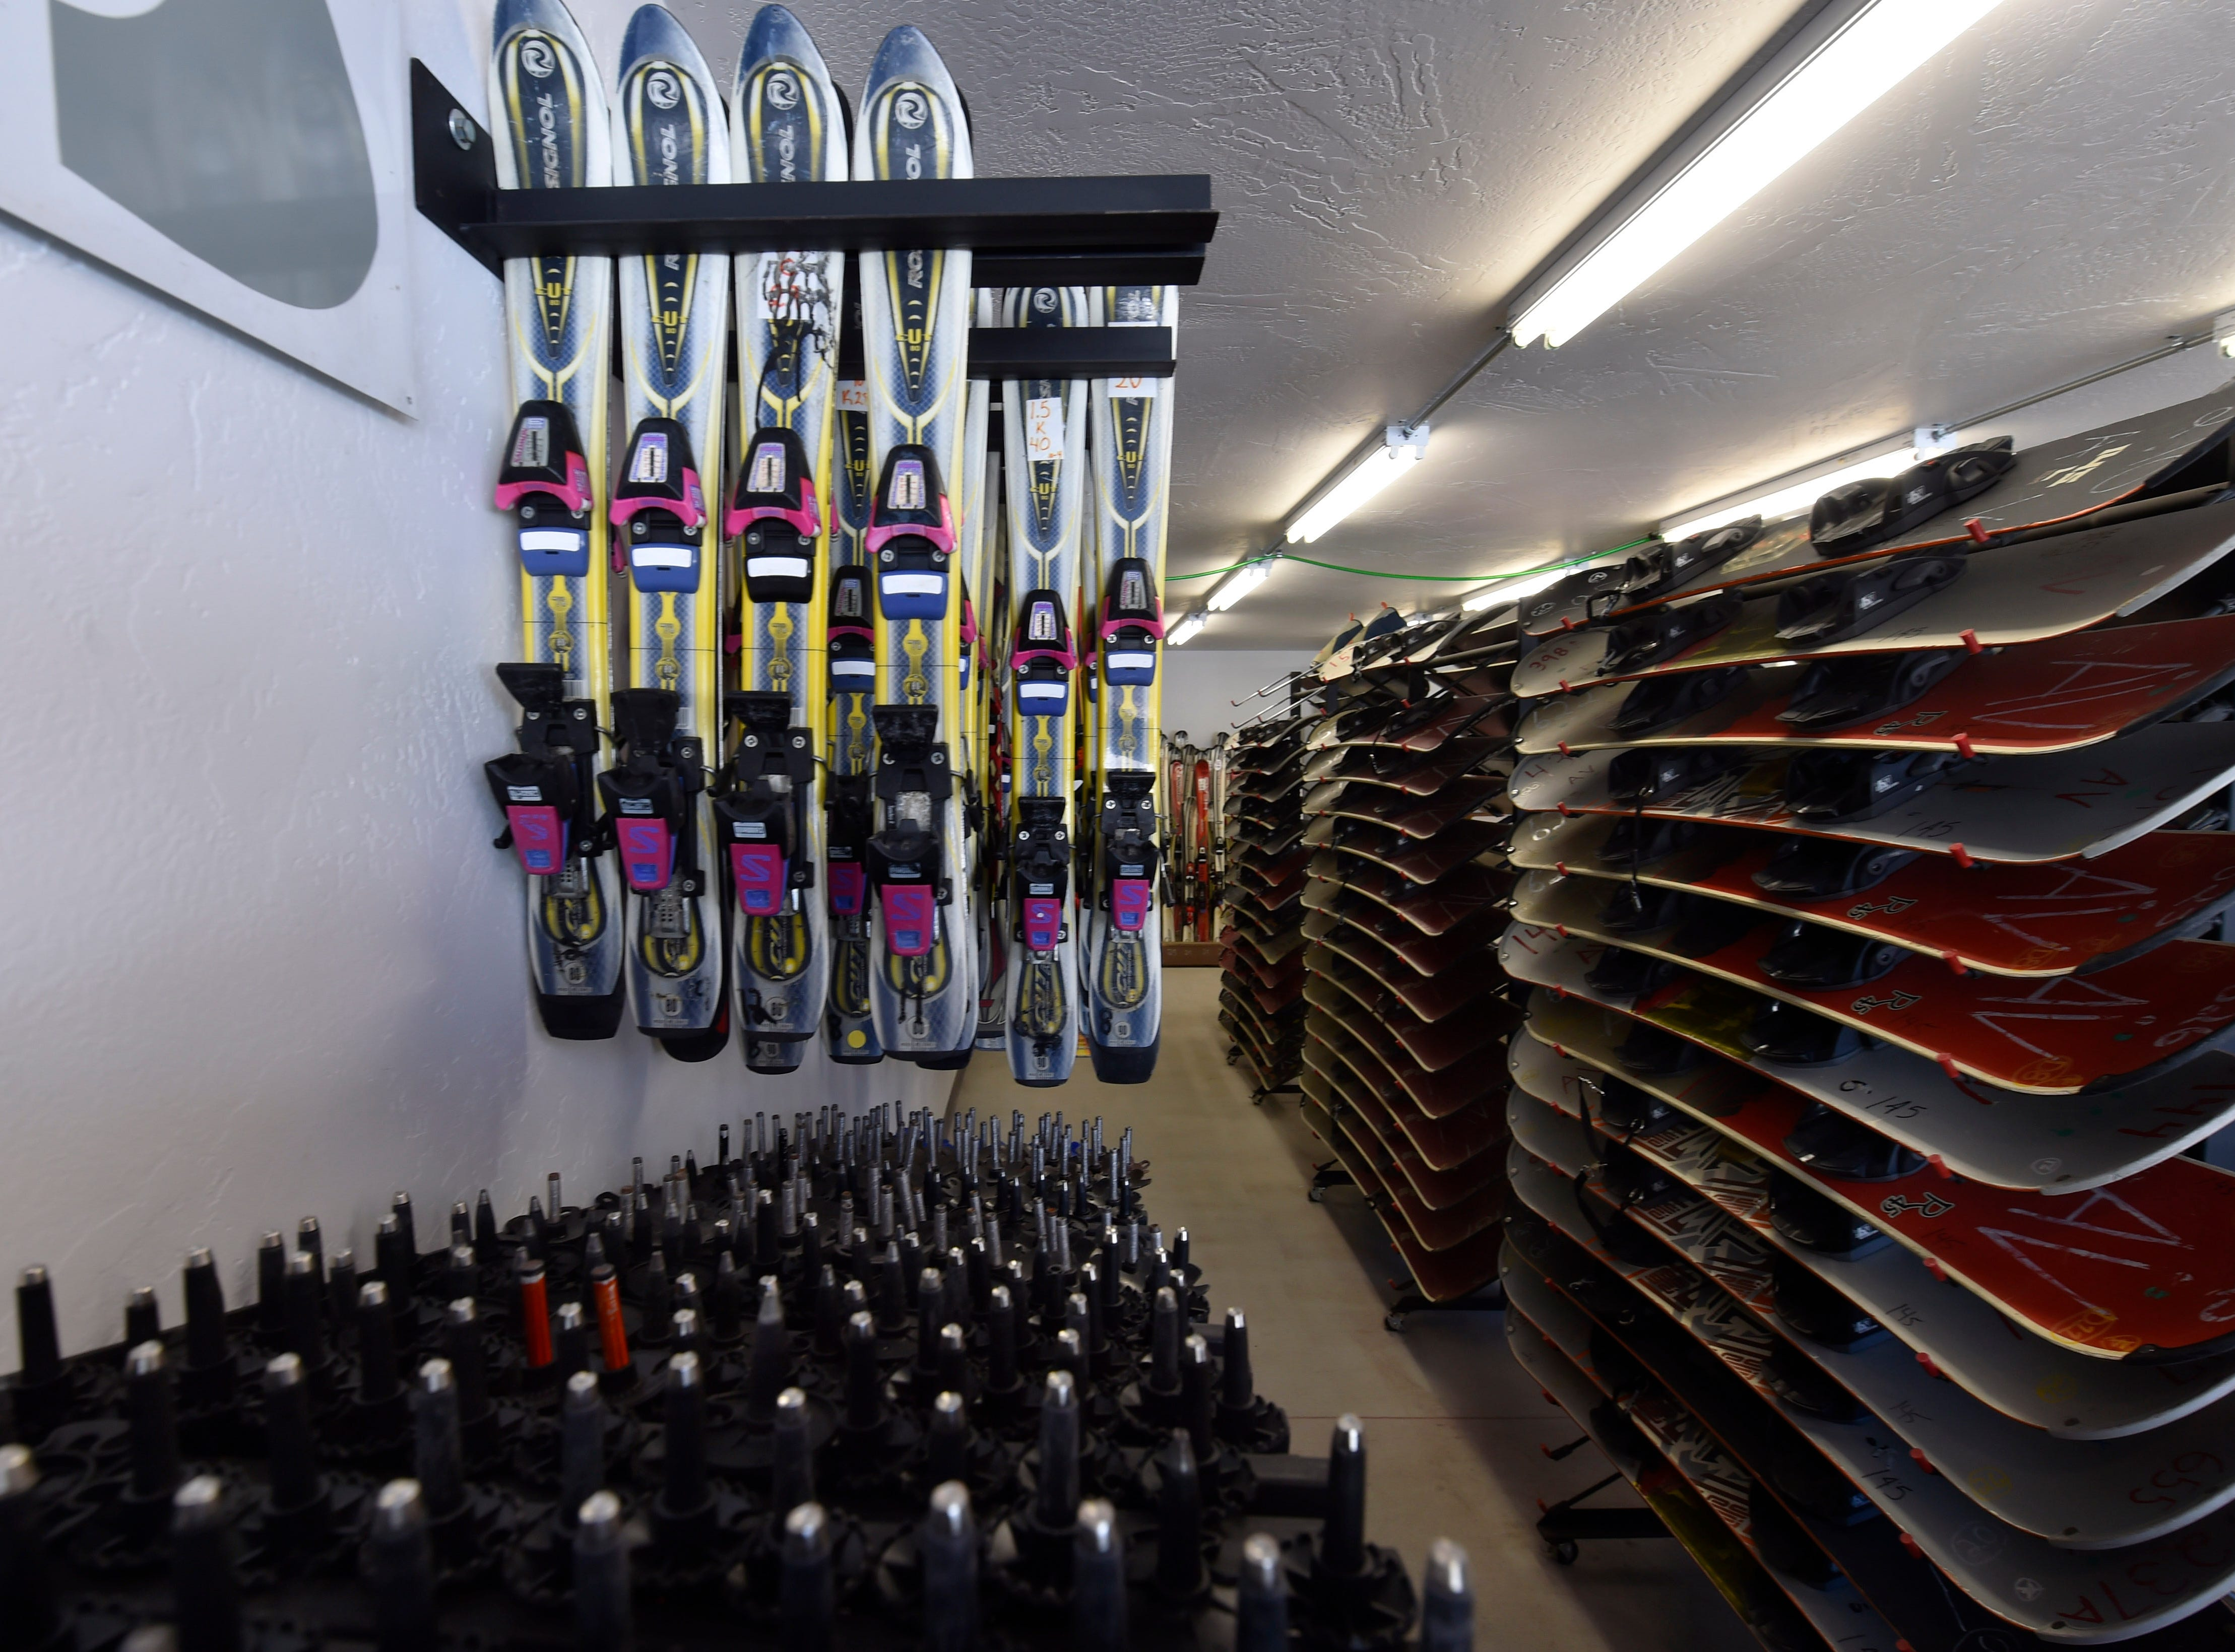 Poles, skis and snowboards for rent at Winter Park in Kewaunee. Tina M. Gohr/USA TODAY NETWORK-Wisconsin